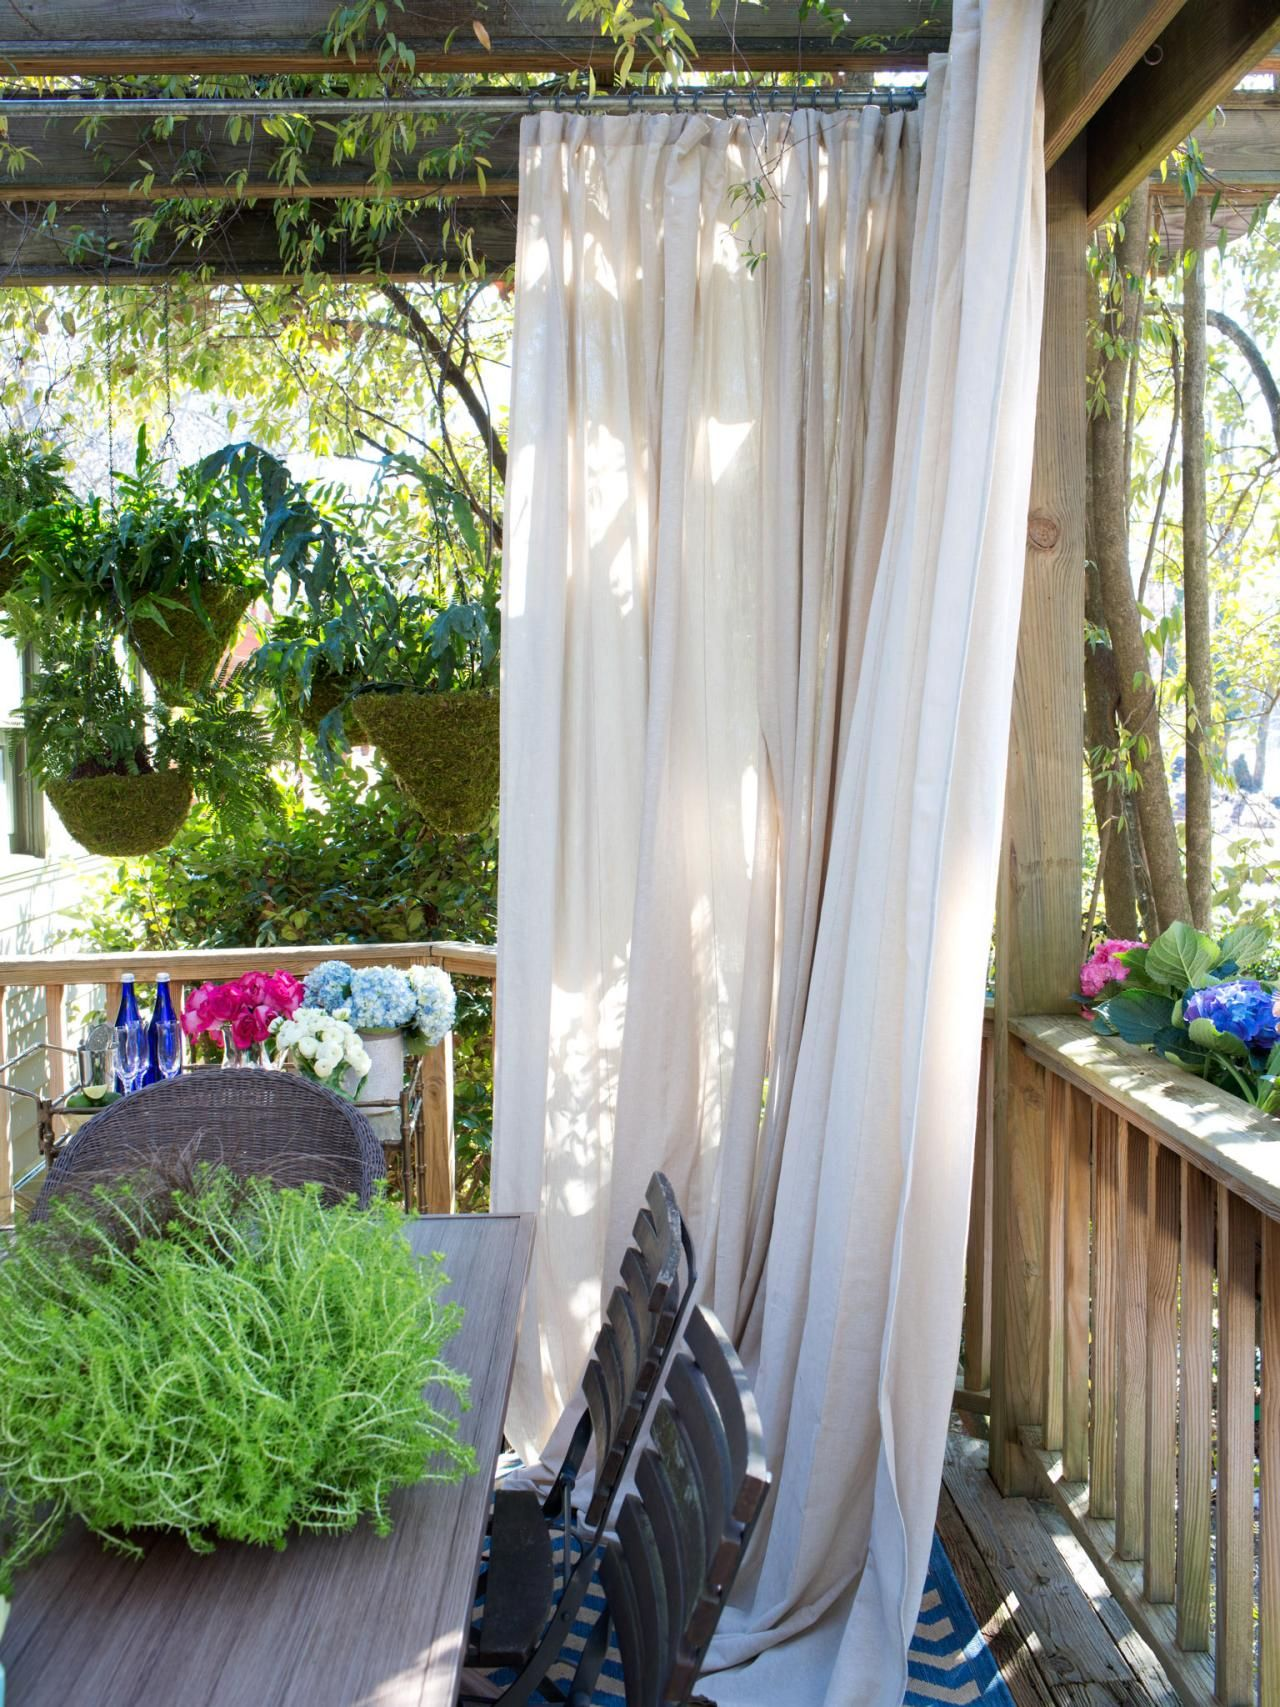 Backyard Privacy Ideas | Pinterest | Backyard privacy, Hgtv and ...